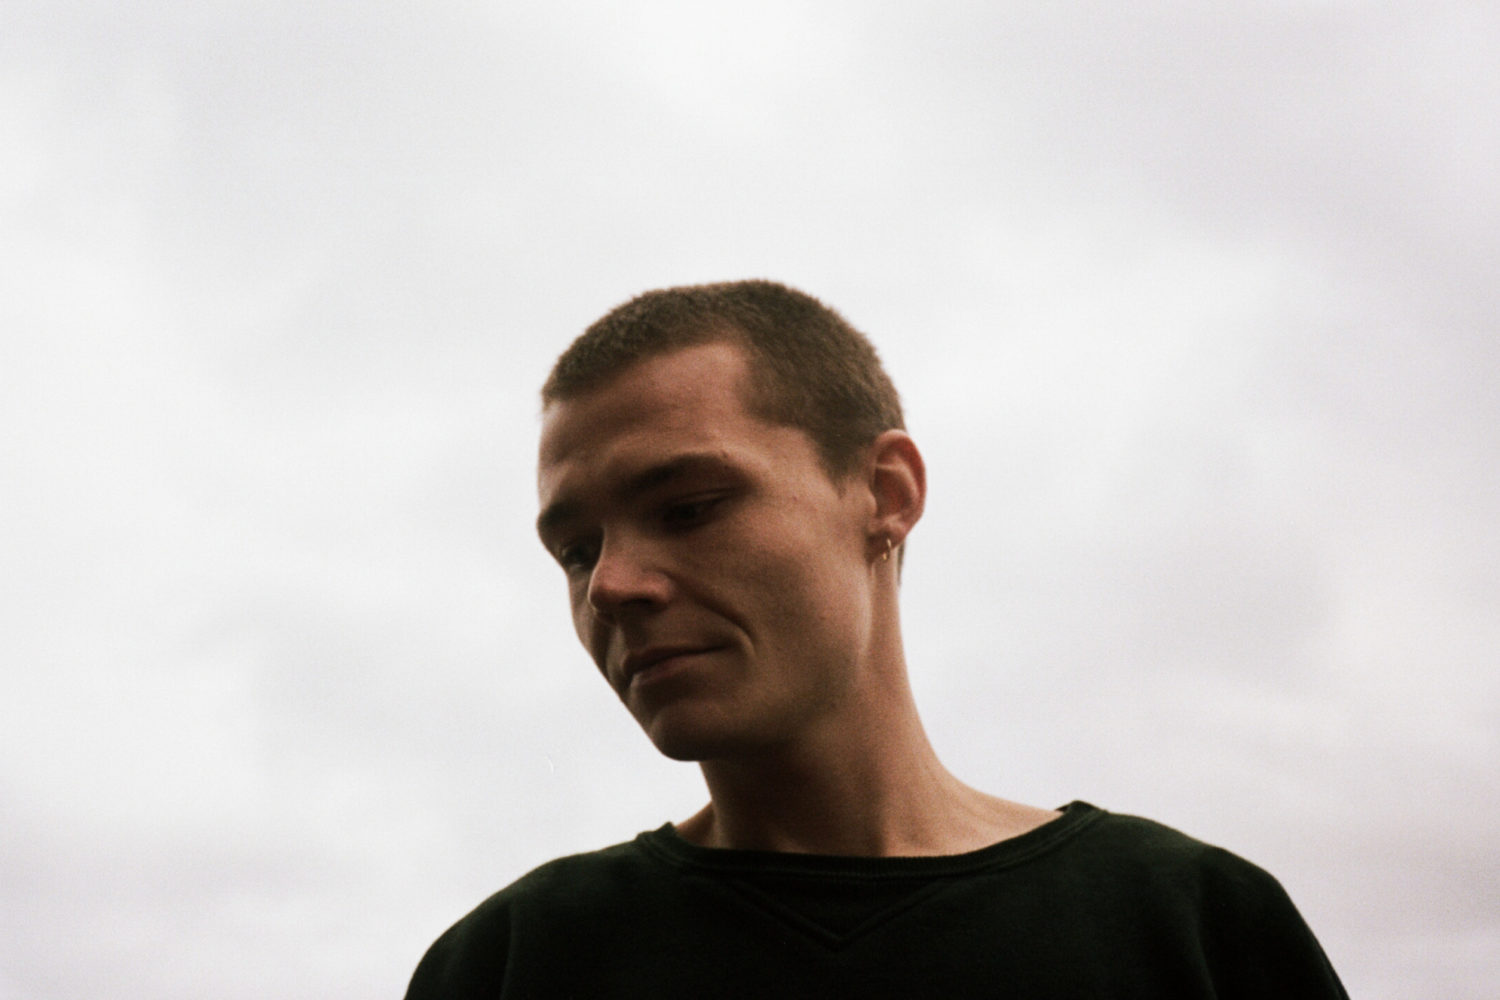 Westerman channels megalomania on new track 'Edison'